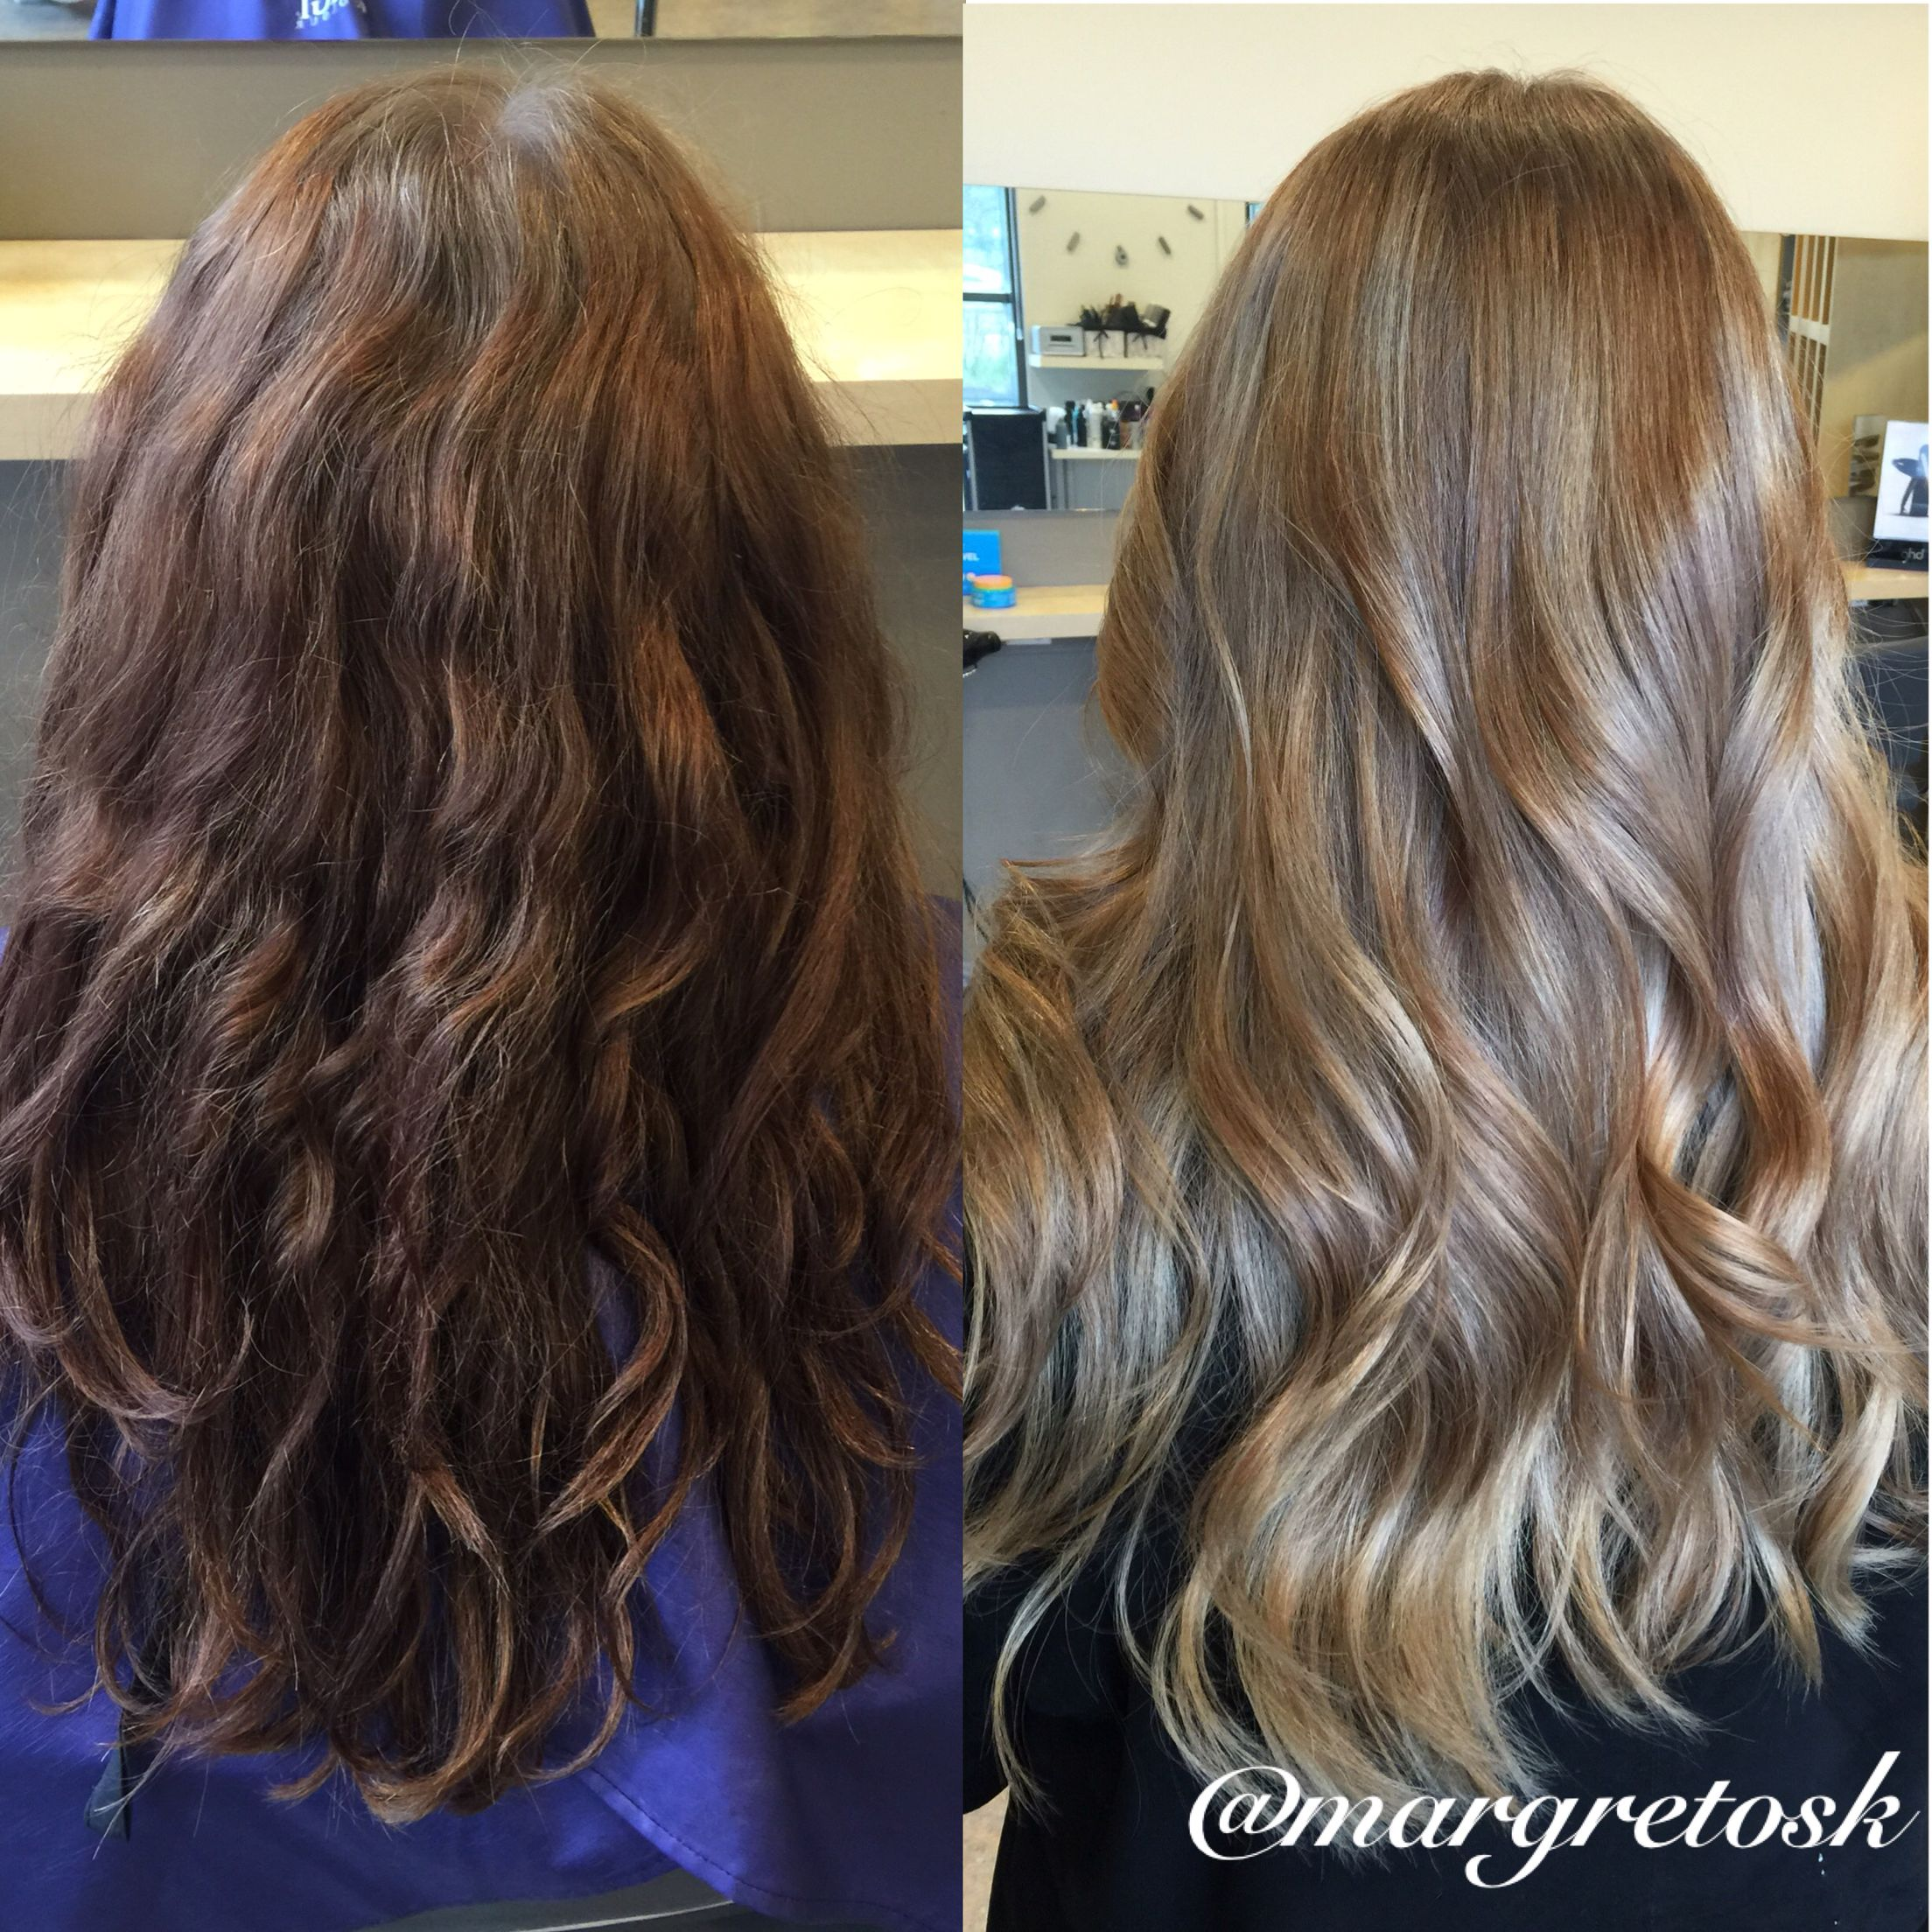 Before And After Coloring From Dark Brown To A Softer More Natural Lighter Color Blonde Hair Dark To Light Hair Light Hair Dark Blonde Hair